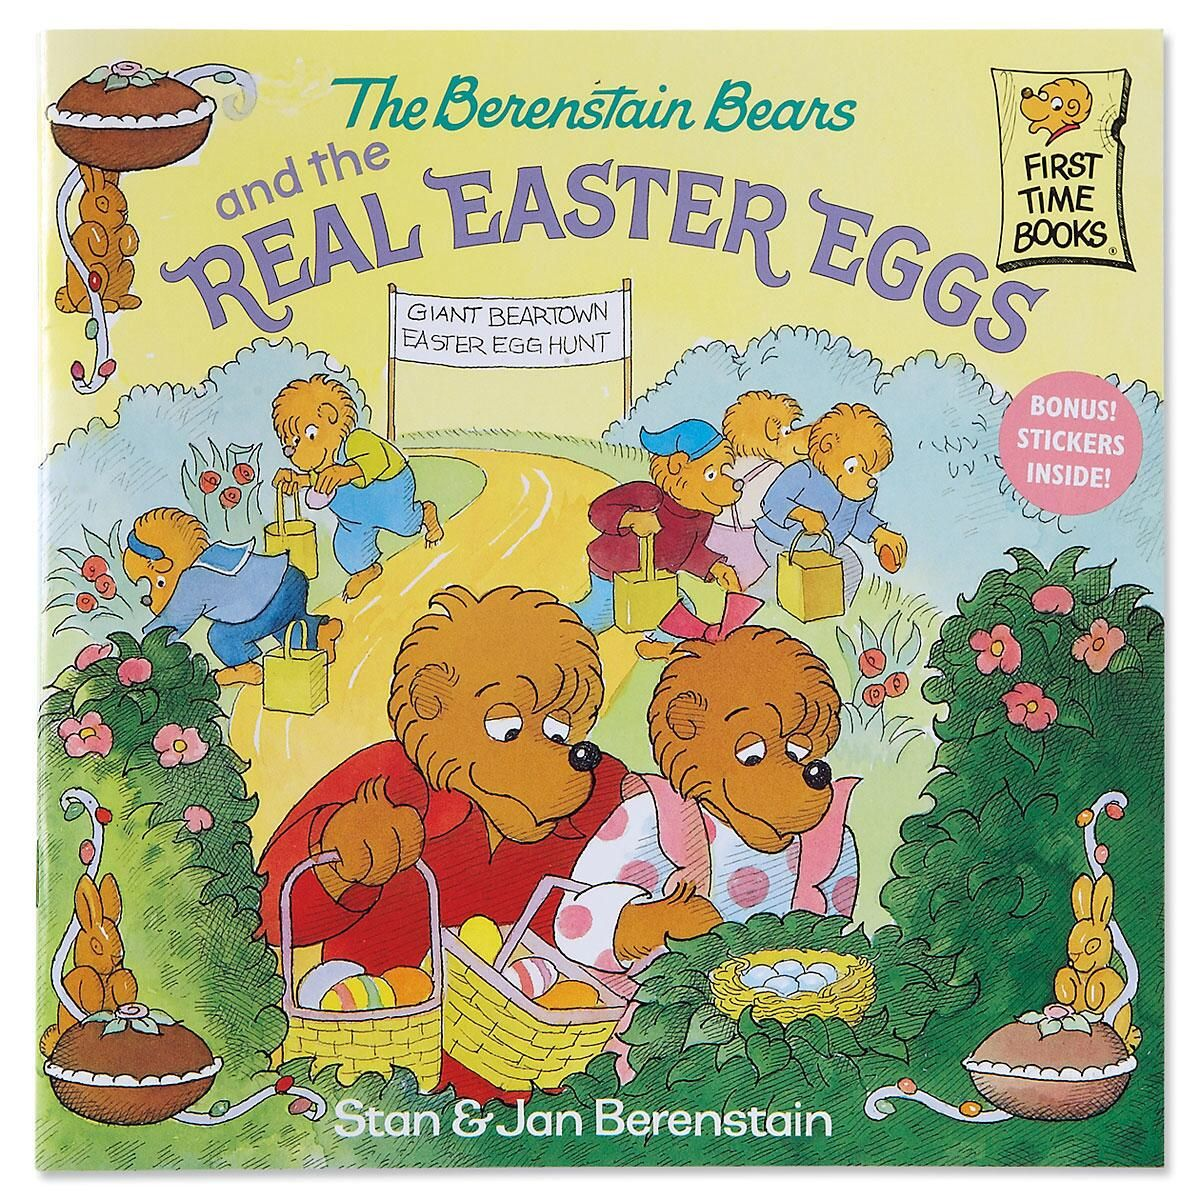 The Berenstain Bears & the Real Easter Eggs